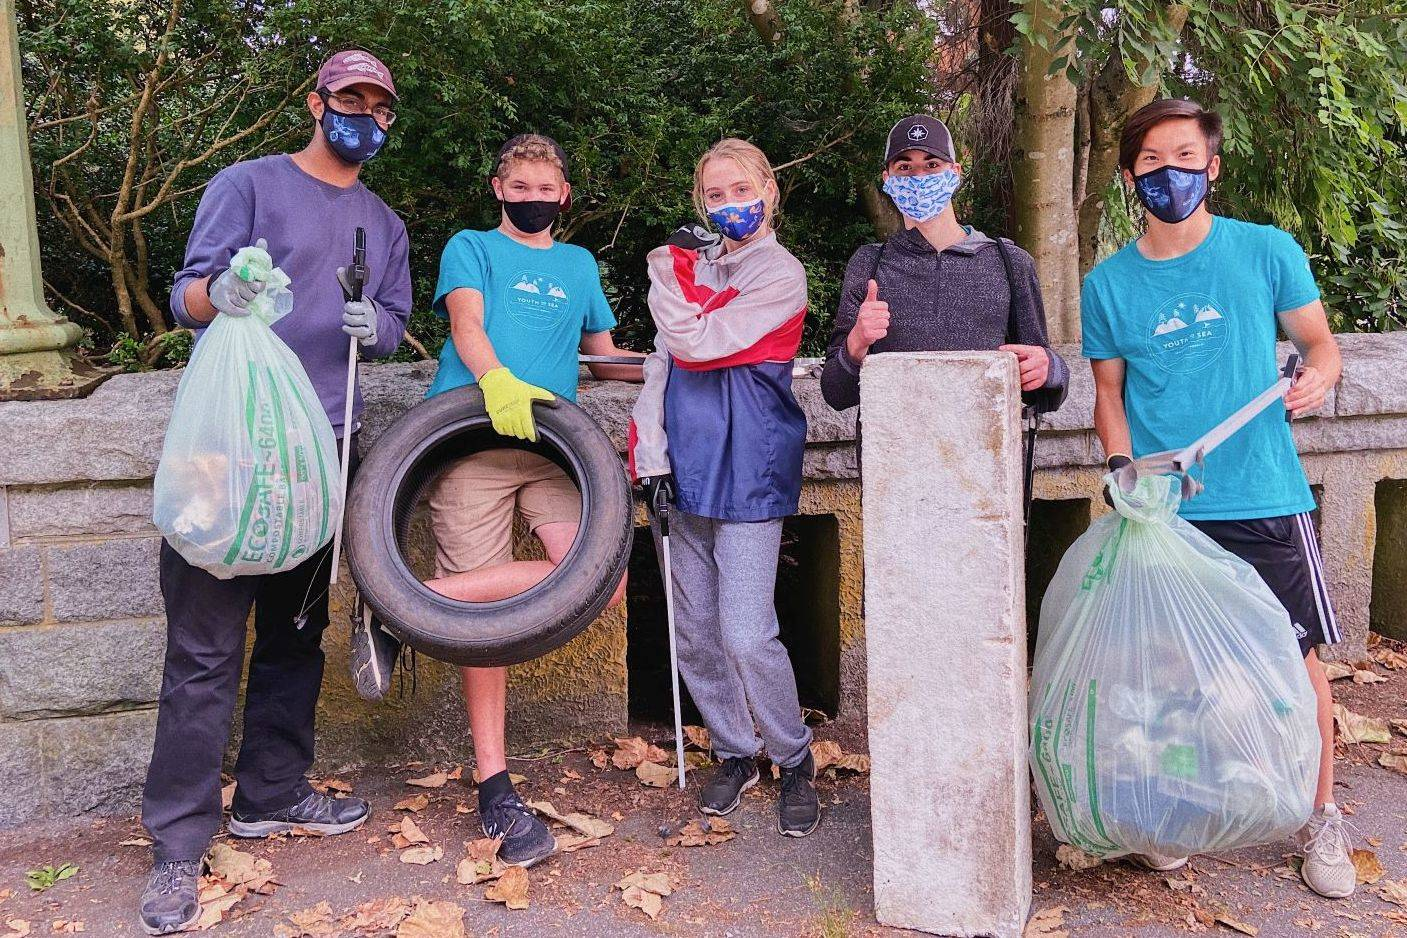 Lower Mainland teens with Ocean Wise's YouthToSea program have launched an initiative called Clean Coastal, Eat Local, through which they're offering restaurant gift cards to individuals or households that organize a coastal cleanup in the month of March. (Photo supplied by Ocean Wise)